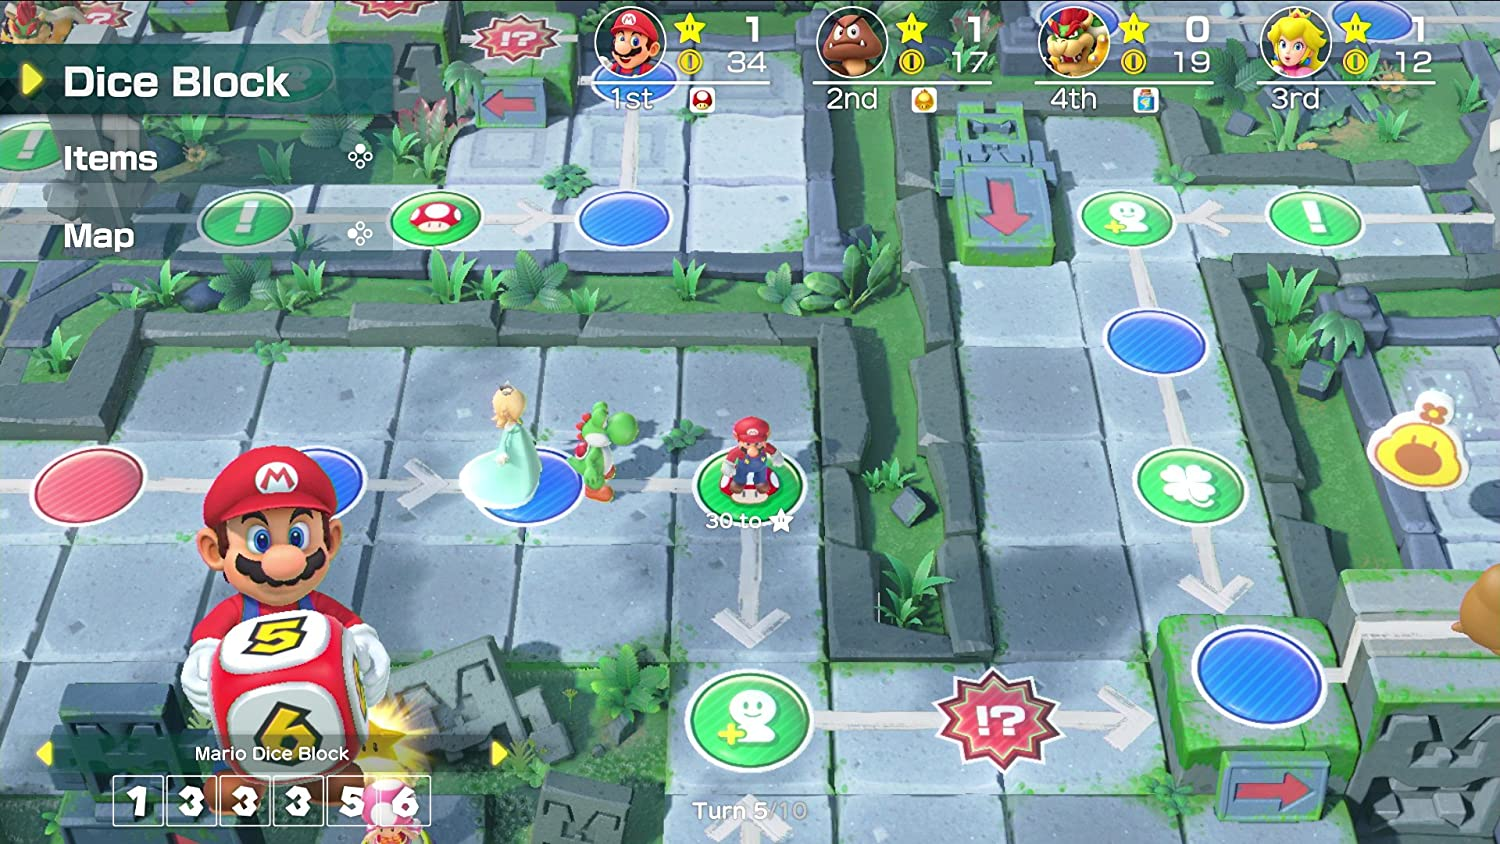 "A screenshot from Super Mario Party showing a virtual game board. Mario is holding a die above a graphic that says ""Mario Dice Block 133356."" Characters are lined at the top of the screen showing ranks. A menu reads Dice Block, Items, and Map."